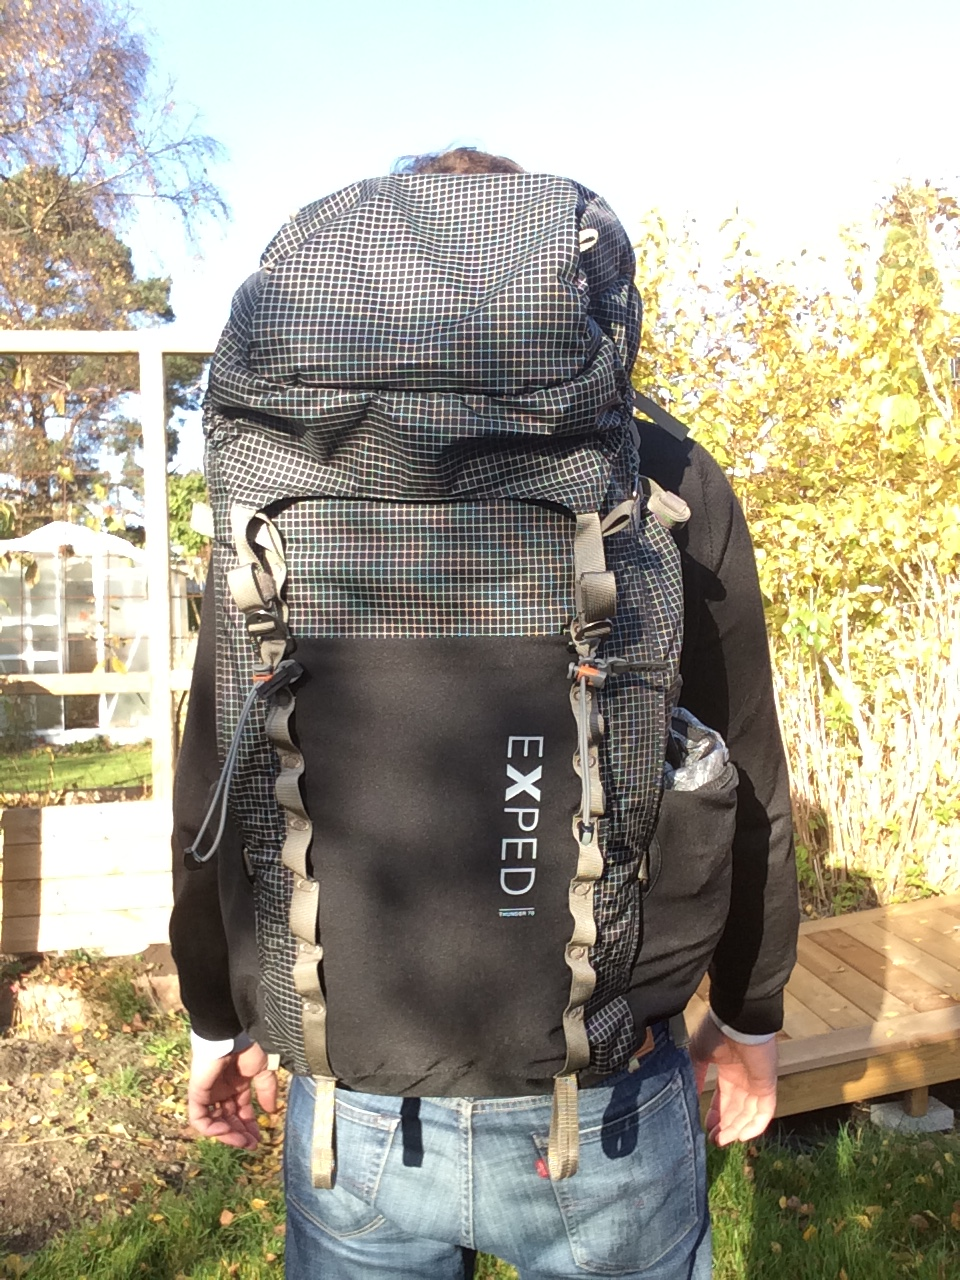 b6c8aeec1b96 Gear review: Exped Thunder 70L backpack – Ultralight and Comfortable